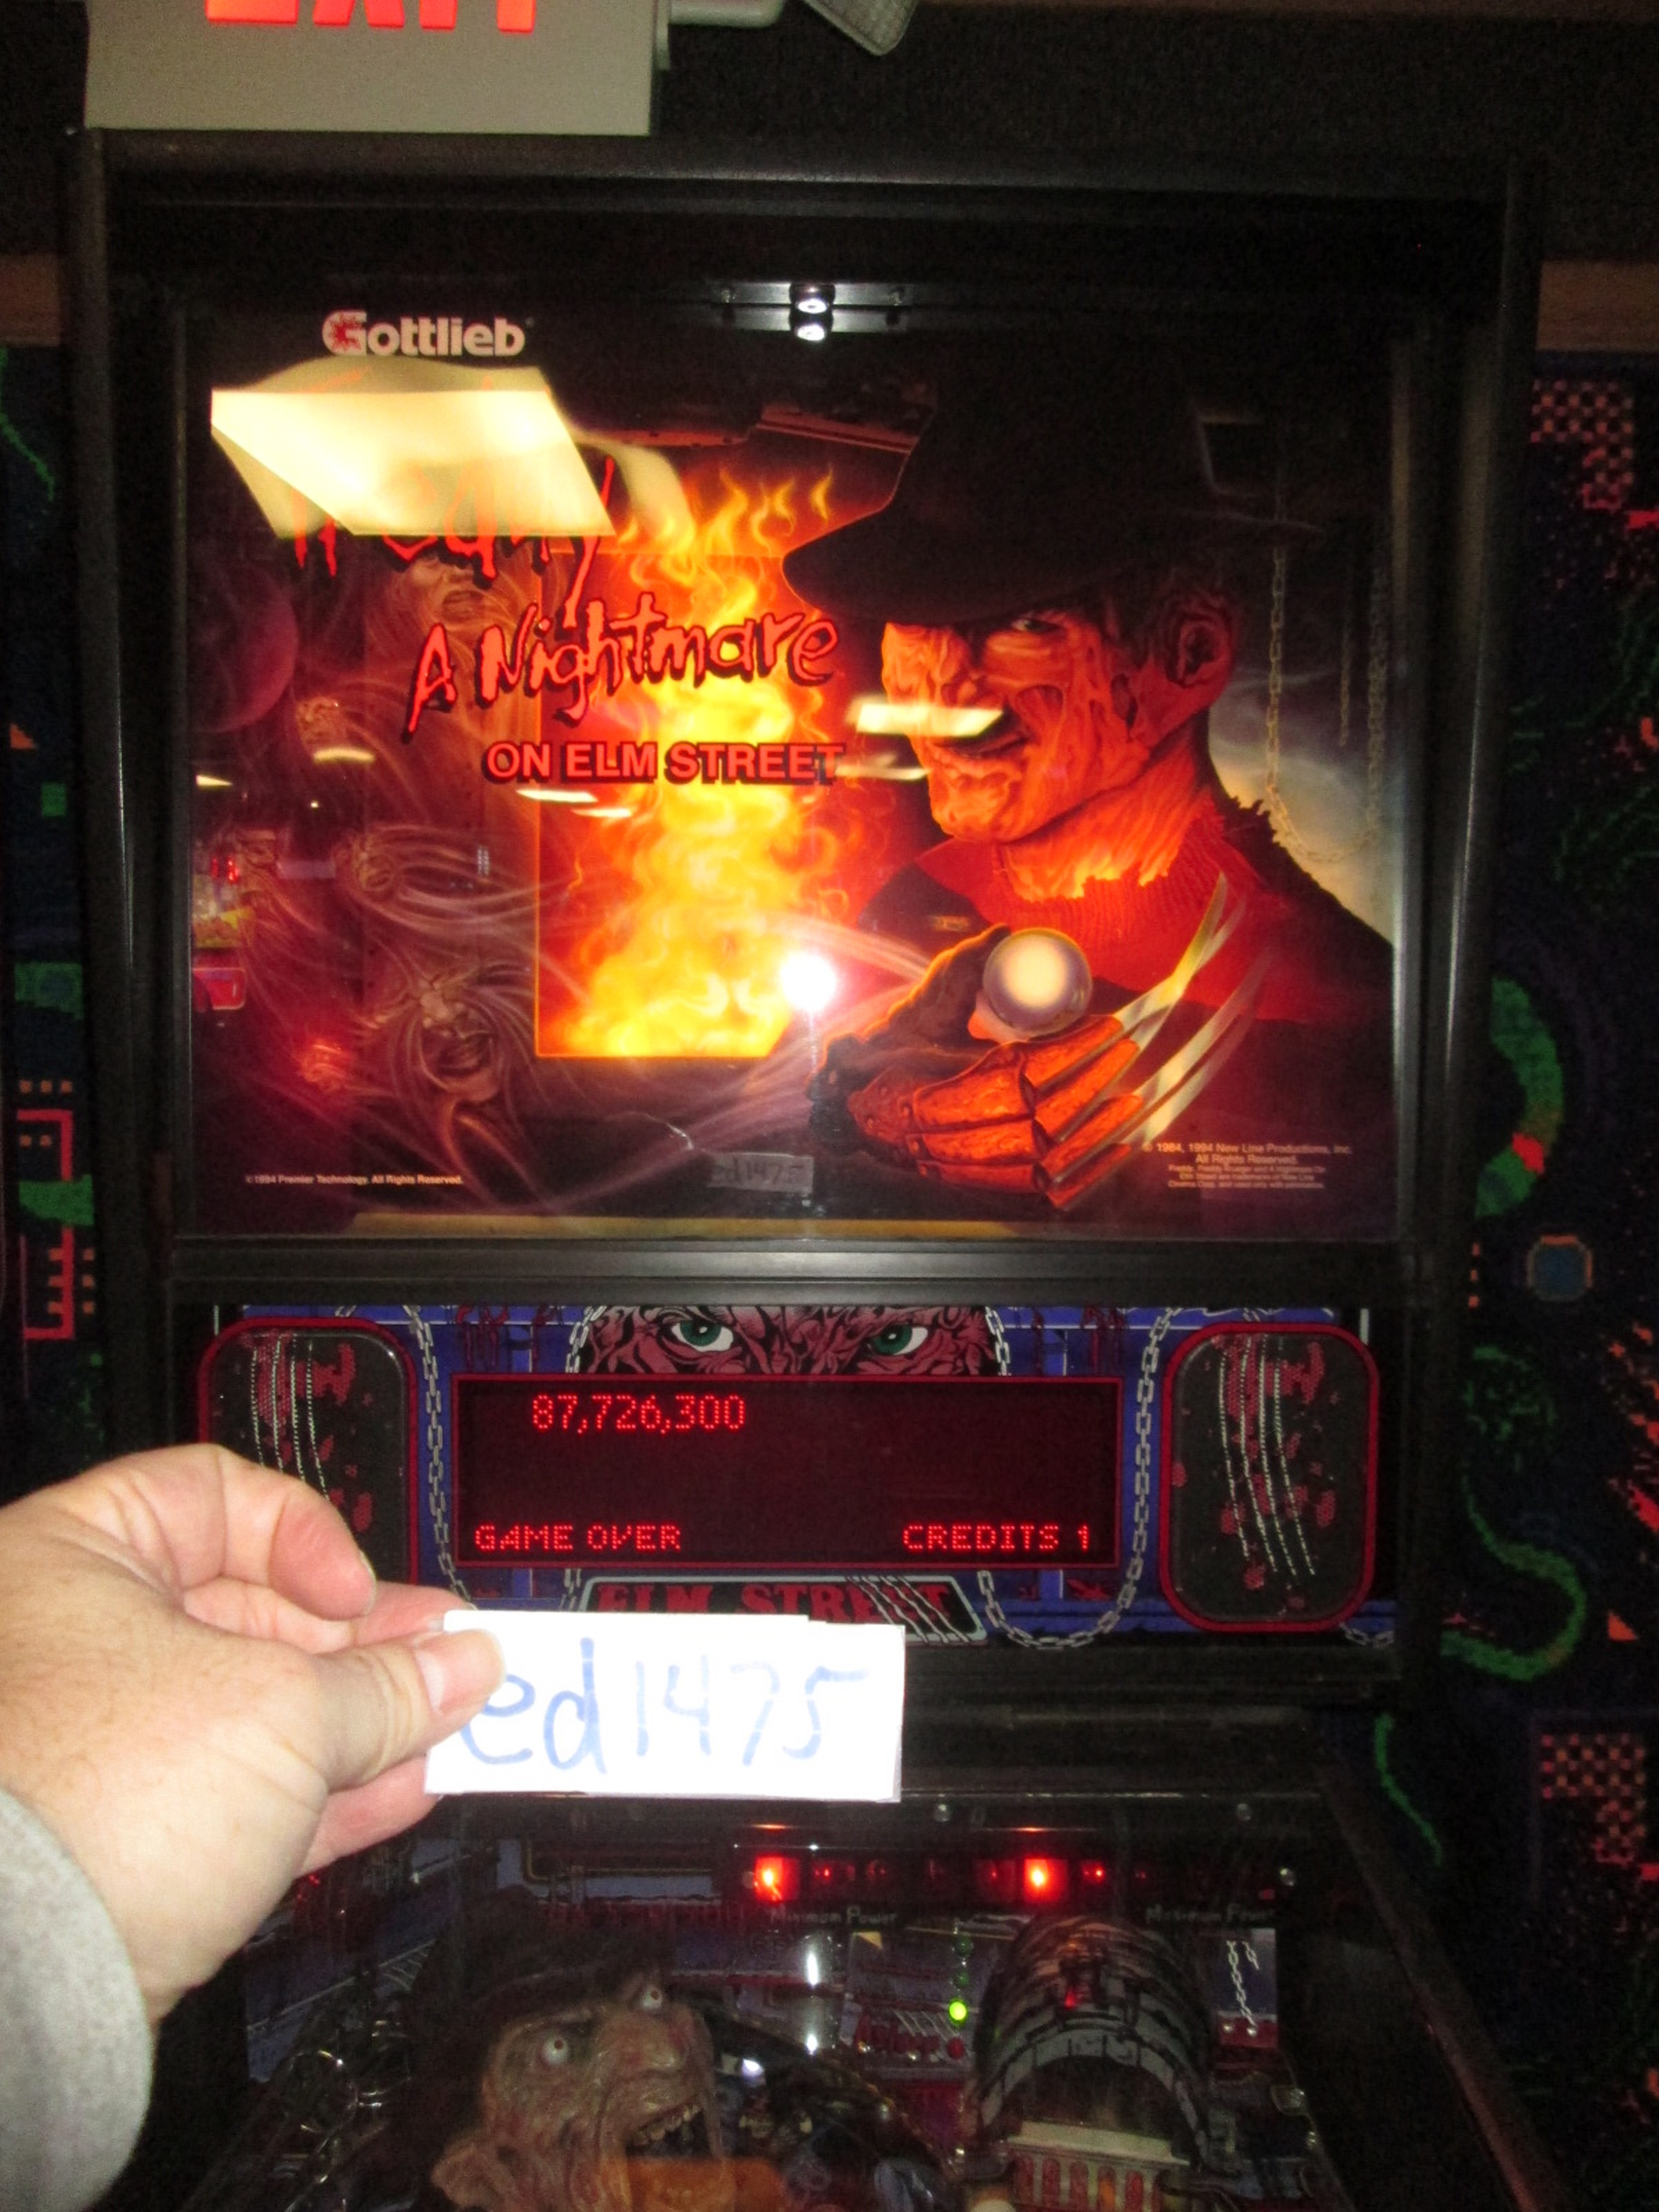 ed1475: Nightmare On Elm Street (Pinball: 3 Balls) 87,726,300 points on 2017-02-05 15:57:30